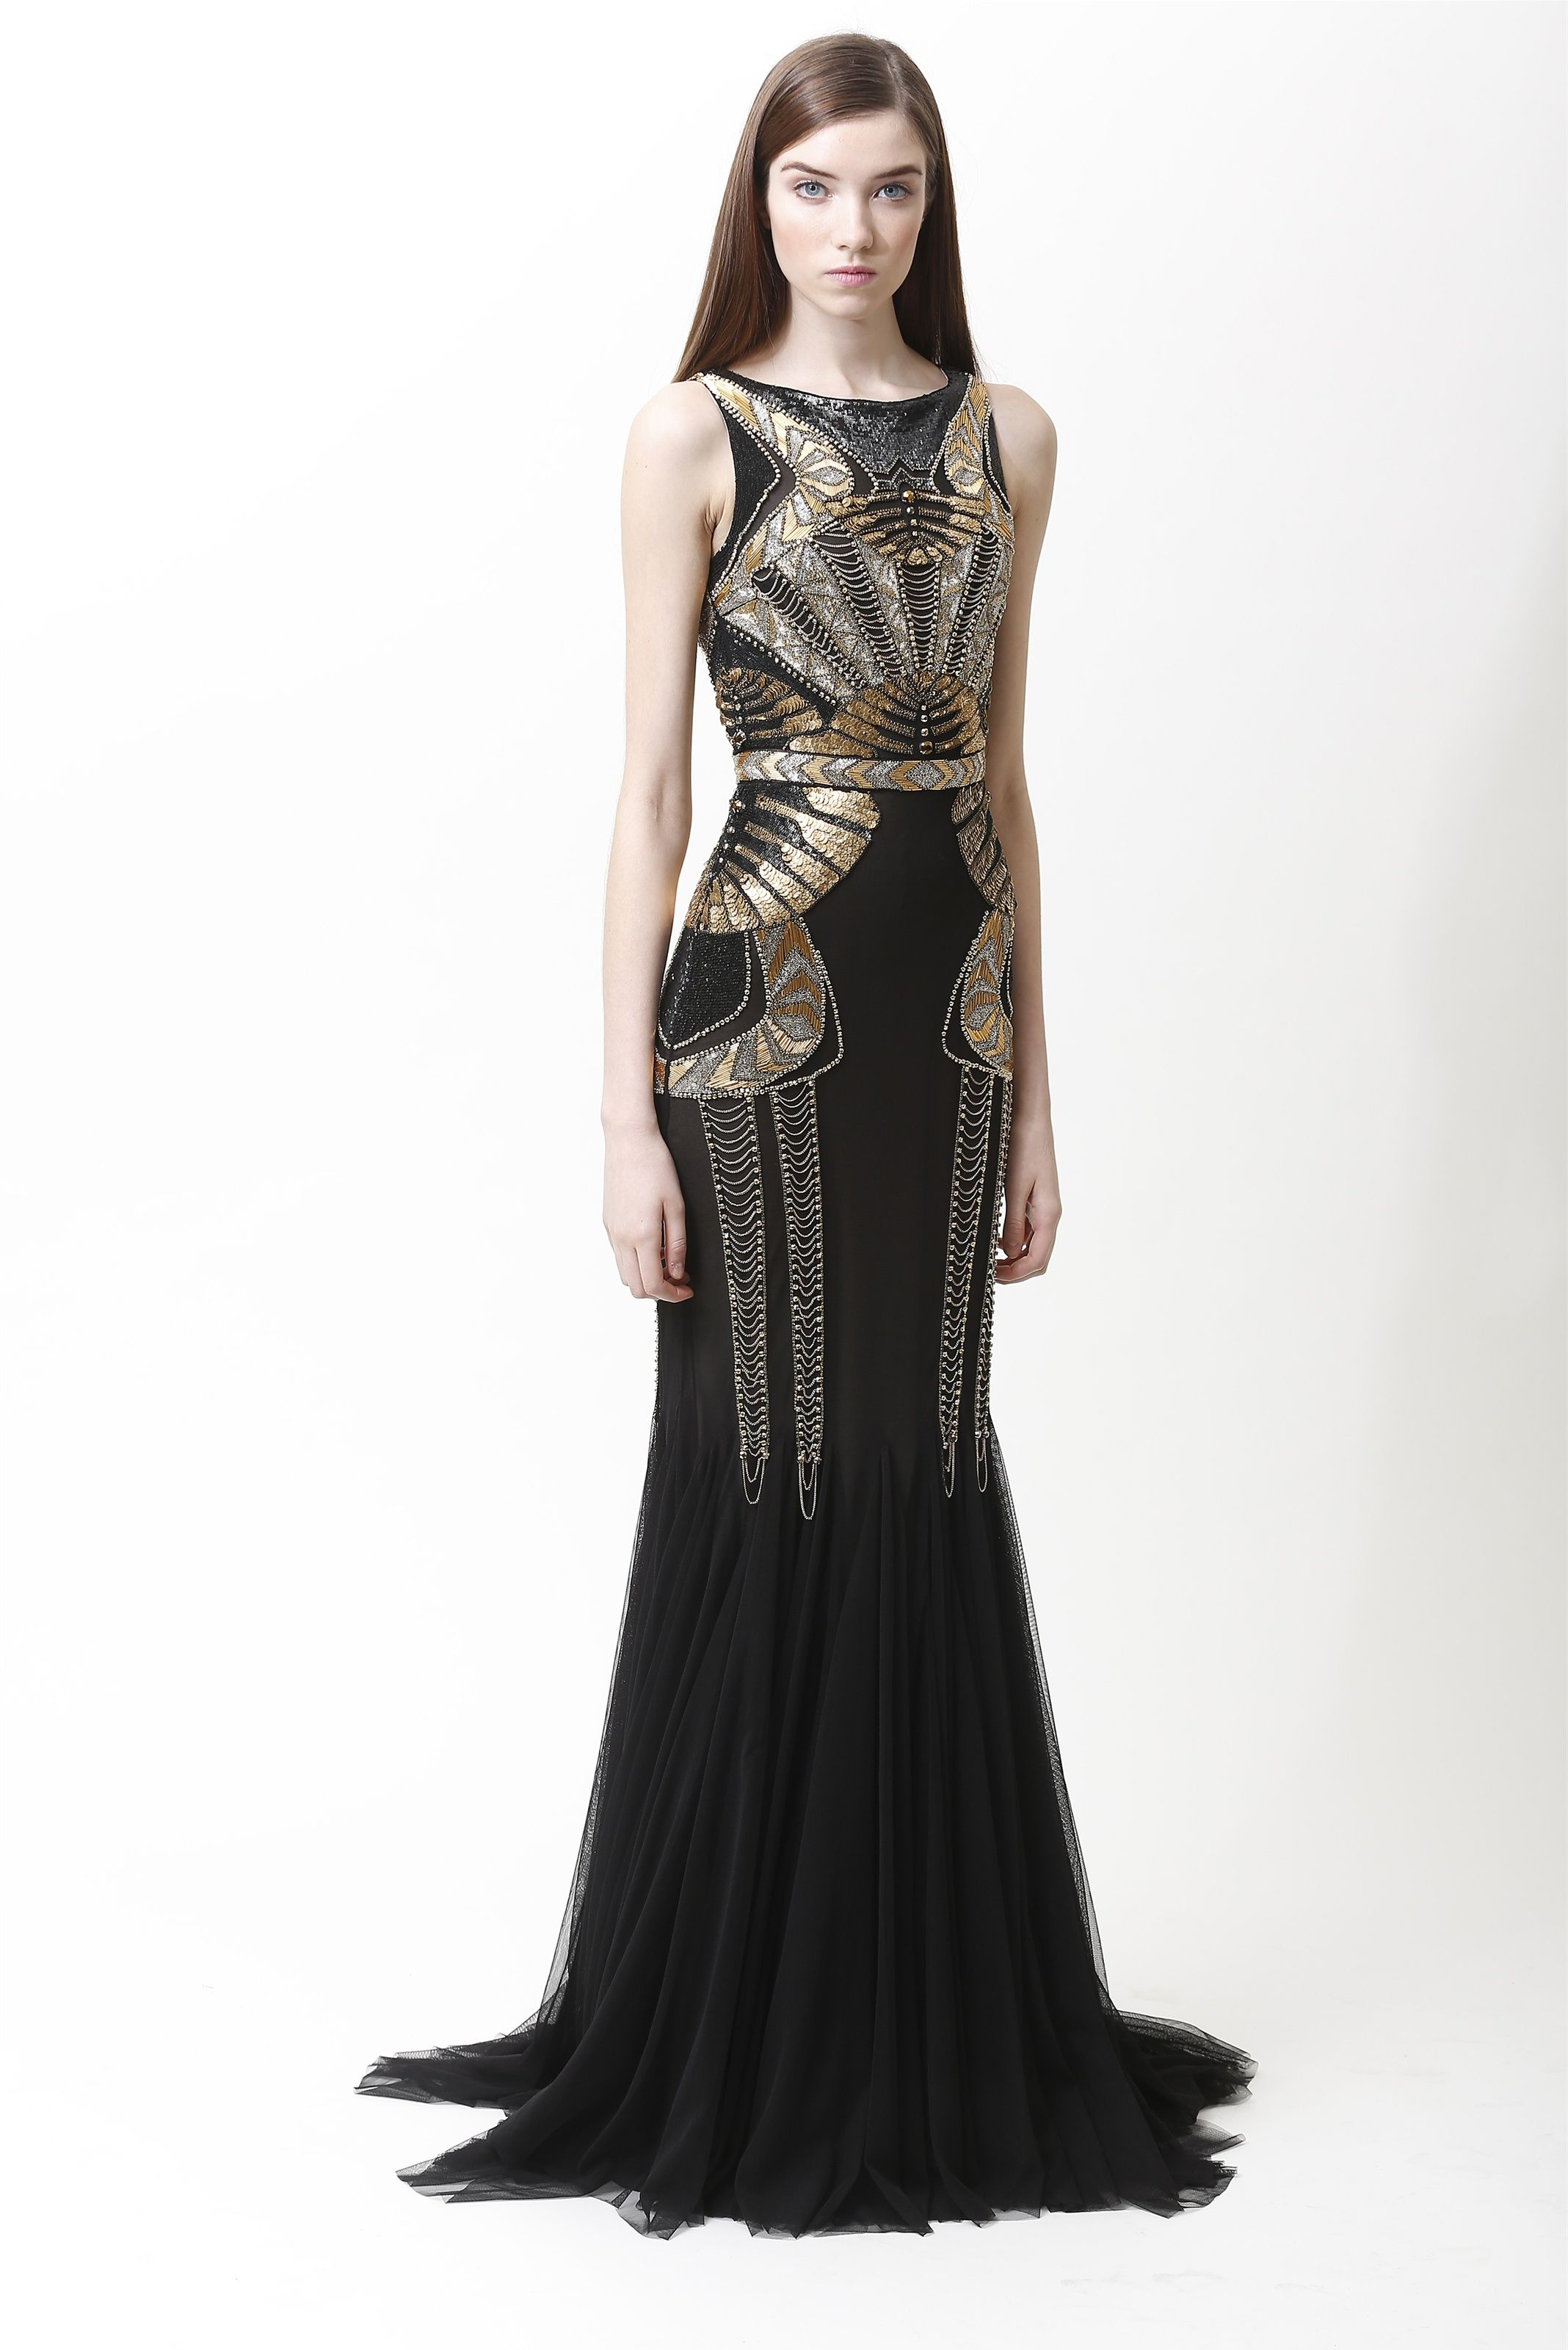 This badgley mischka pre fall 201314 black and gold evening my moh dress this badgley mischka pre fall black and gold evening dress would make a stunning wedding dress for a art deco great gatsby themed wedding ombrellifo Image collections